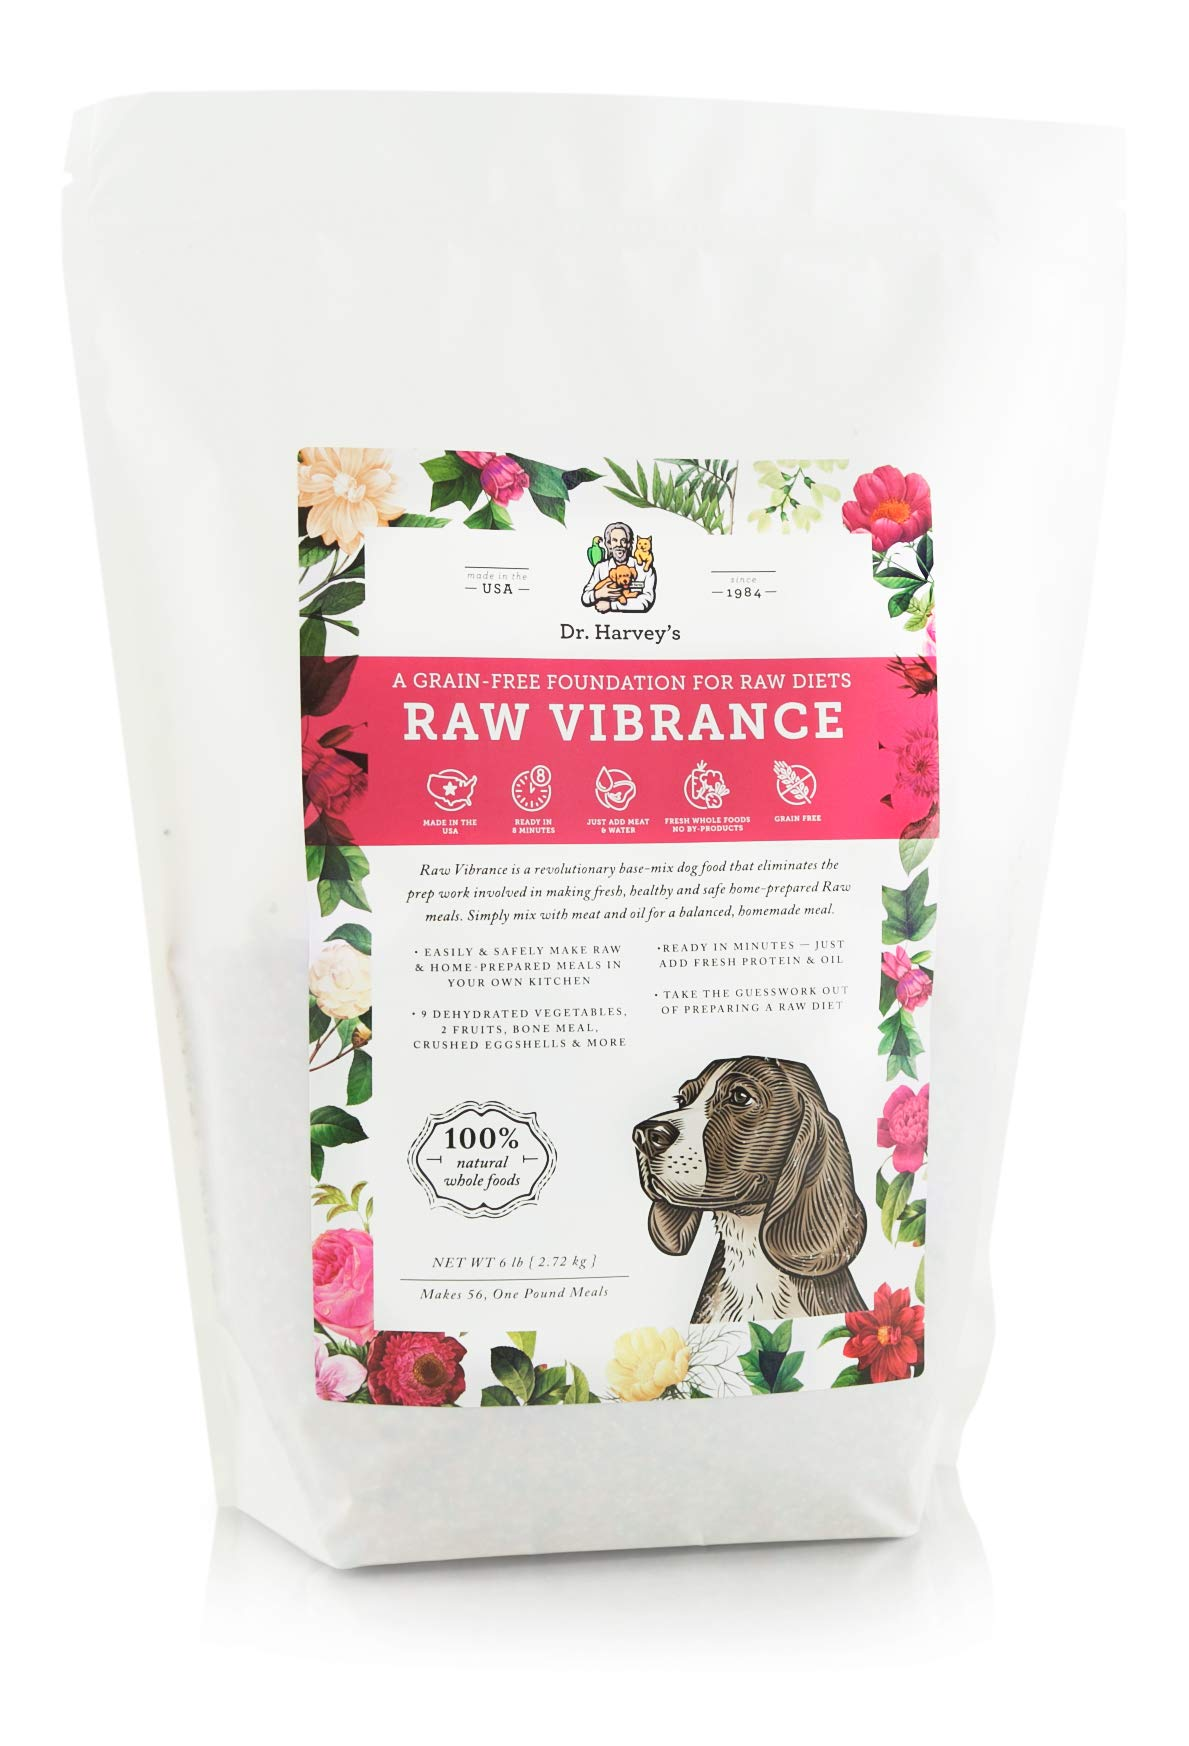 Dr. Harvey's Raw Vibrance Grain Free Dehydrated Foundation for Raw Diet Dog Food (6 Pounds) by Dr. Harvey's